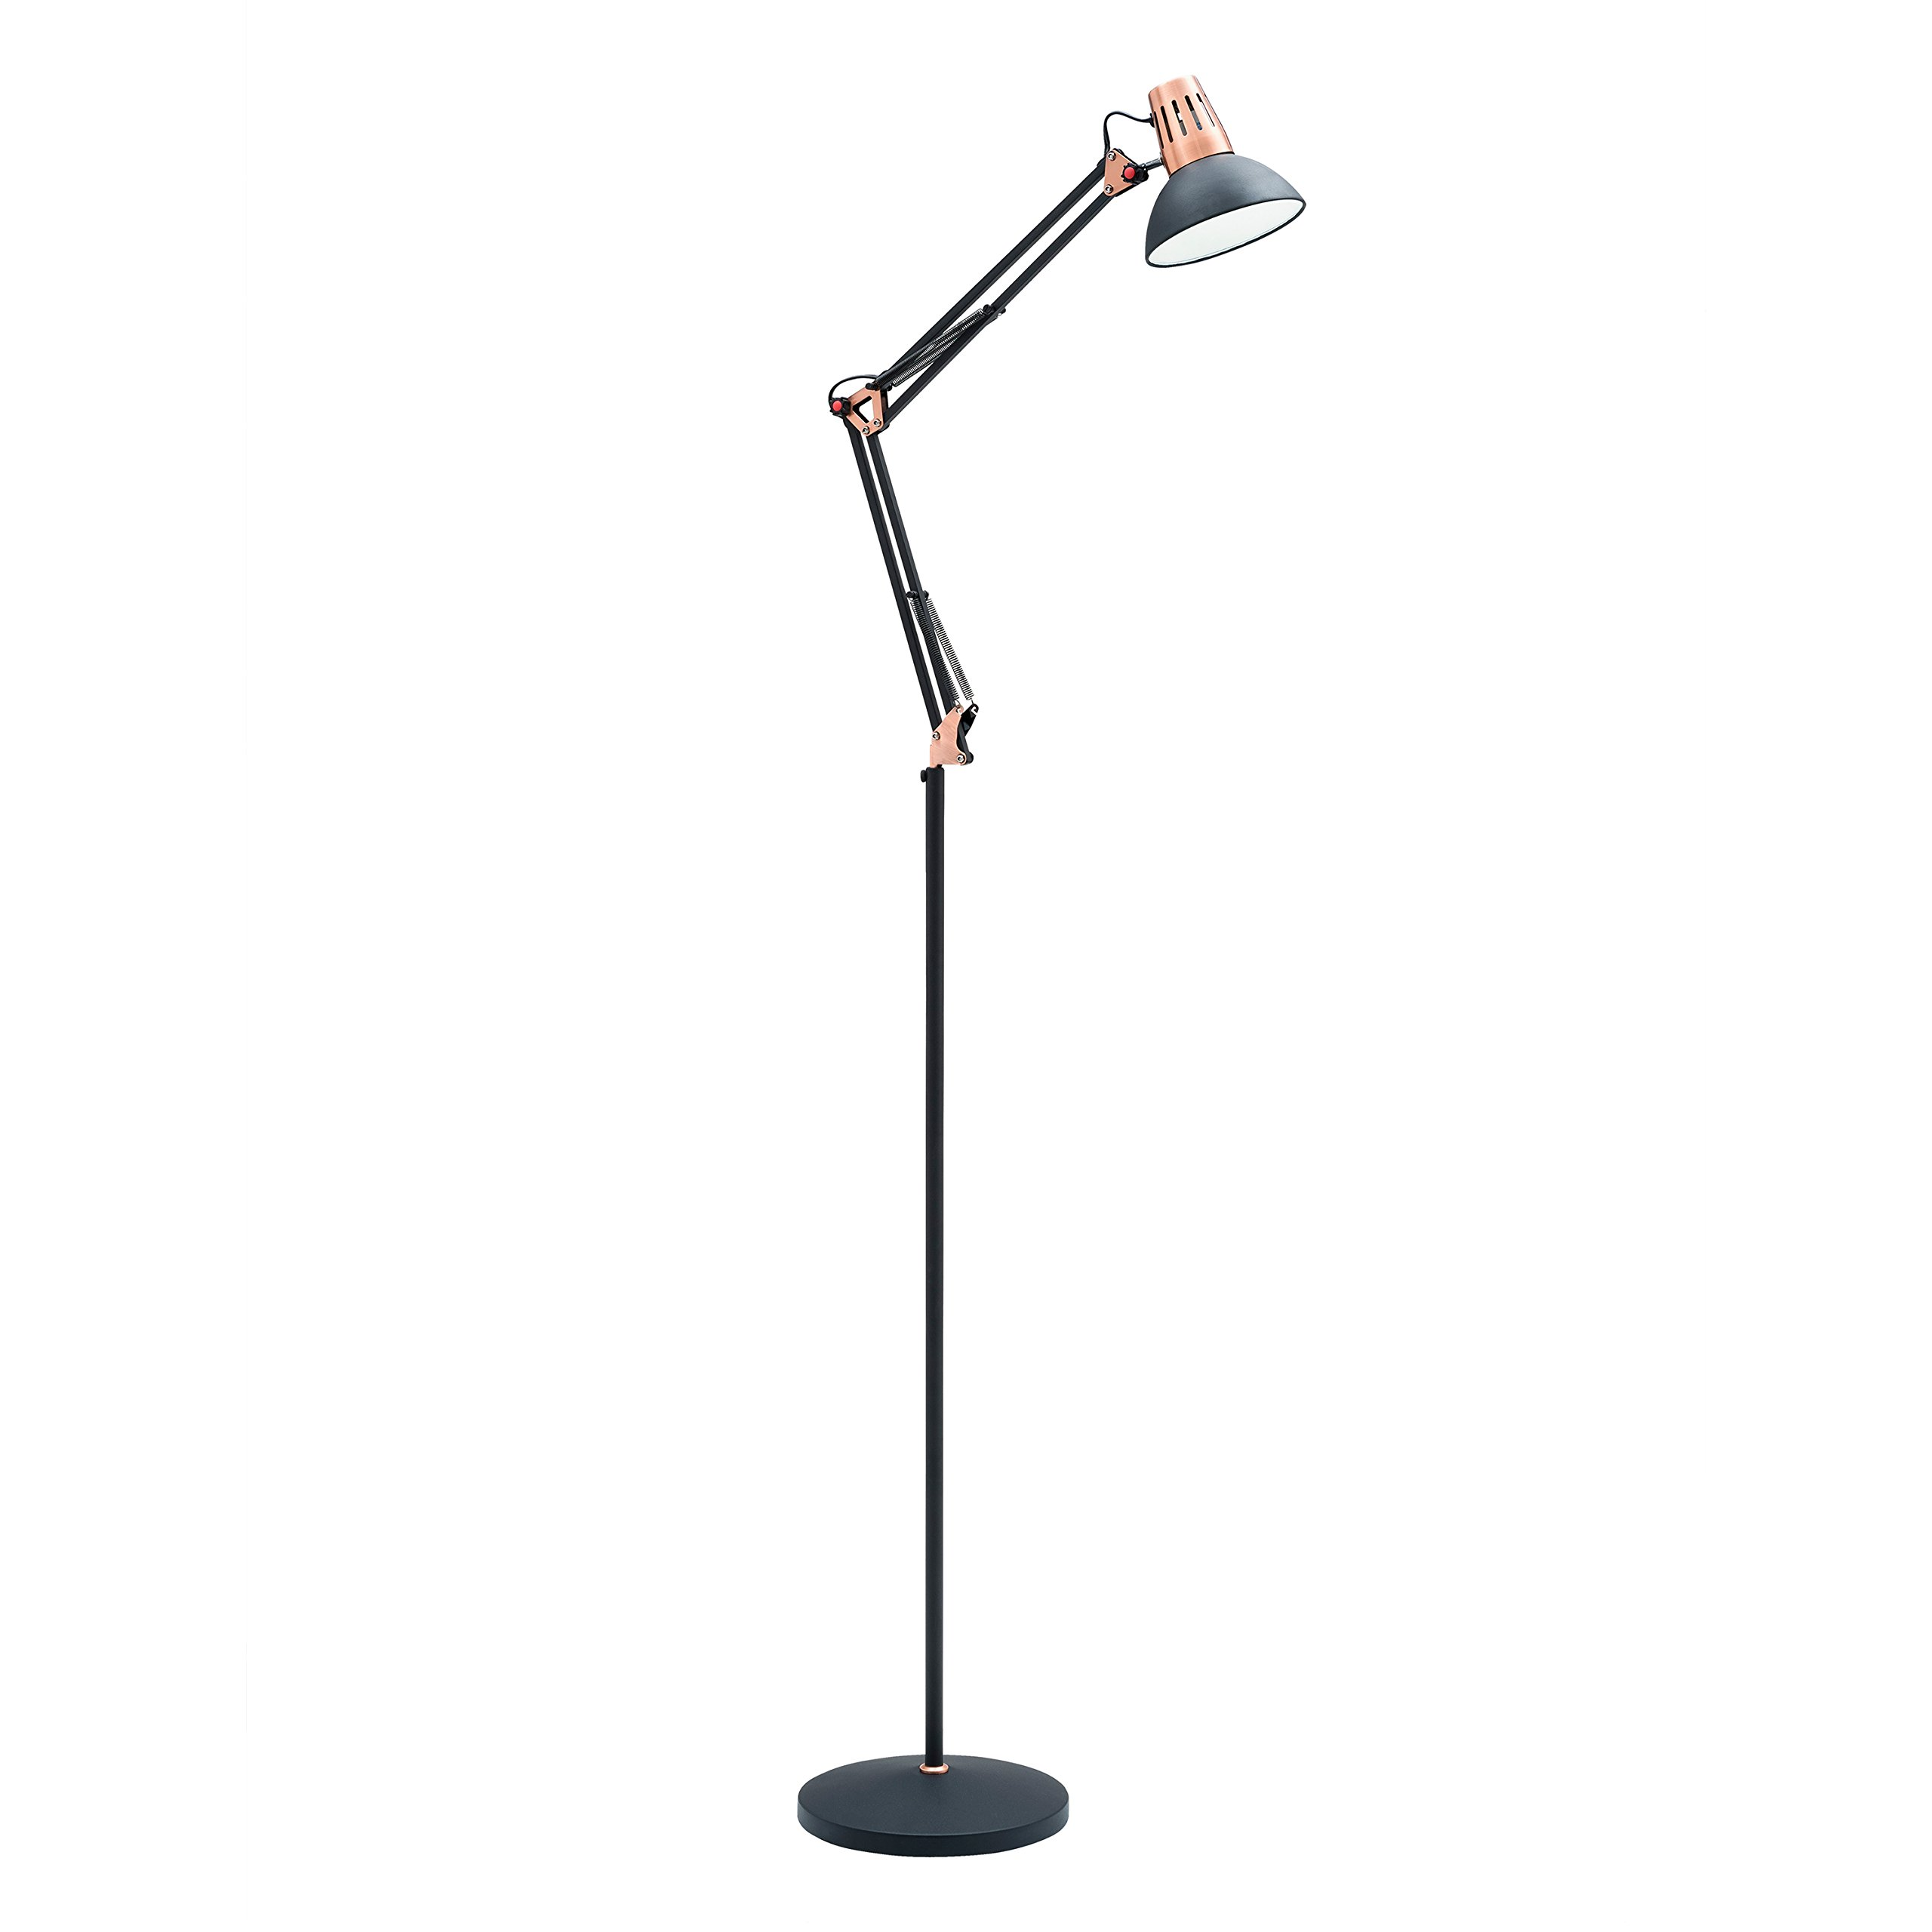 Light Society Yukon Floor Lamp, Sand Textured Black Shade and Body with Brushed Copper Finish, Modern Industrial Mid-Century Lighting Fixture (LS-F206-BLK)